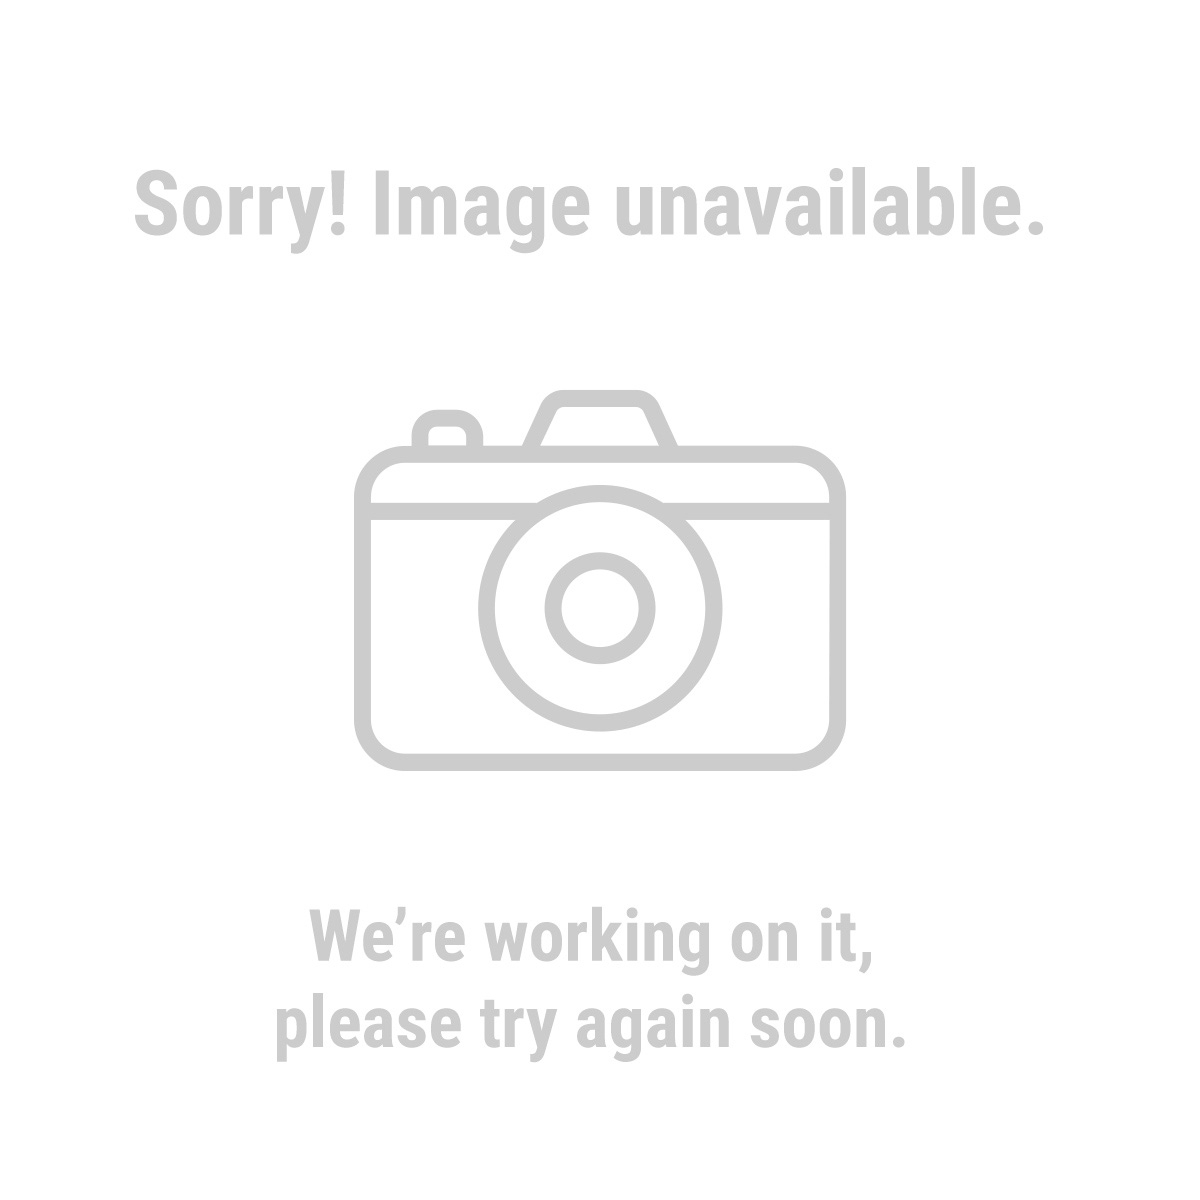 image_12144 ordered aftermarket winch controller plowsite harbor freight trailer wiring harness at crackthecode.co